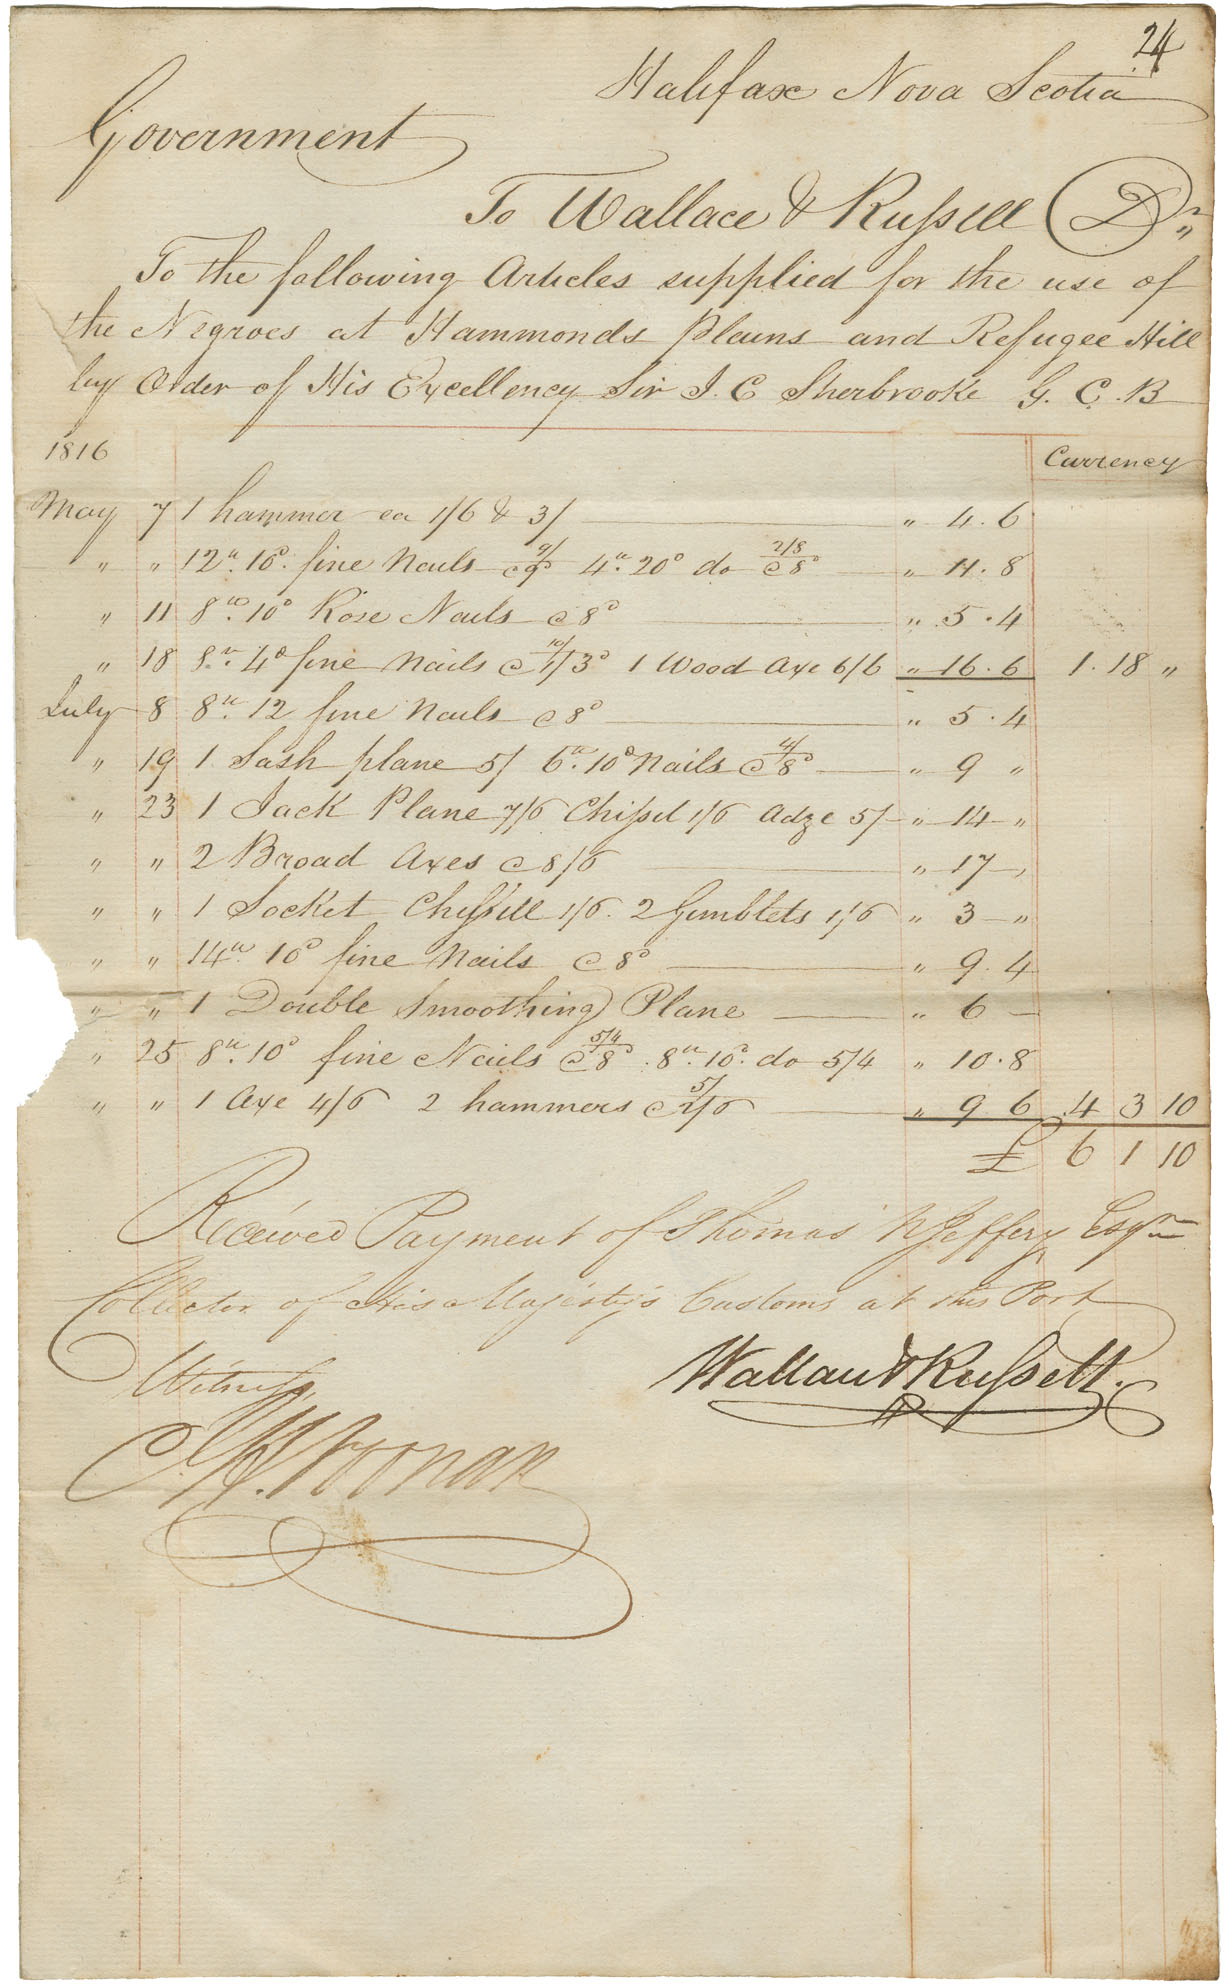 african-heritage : Accounts against Government for supplies for Black Refugees during the year 1816, with the following suppliers: John H. Noonan, Lewis DeMoli